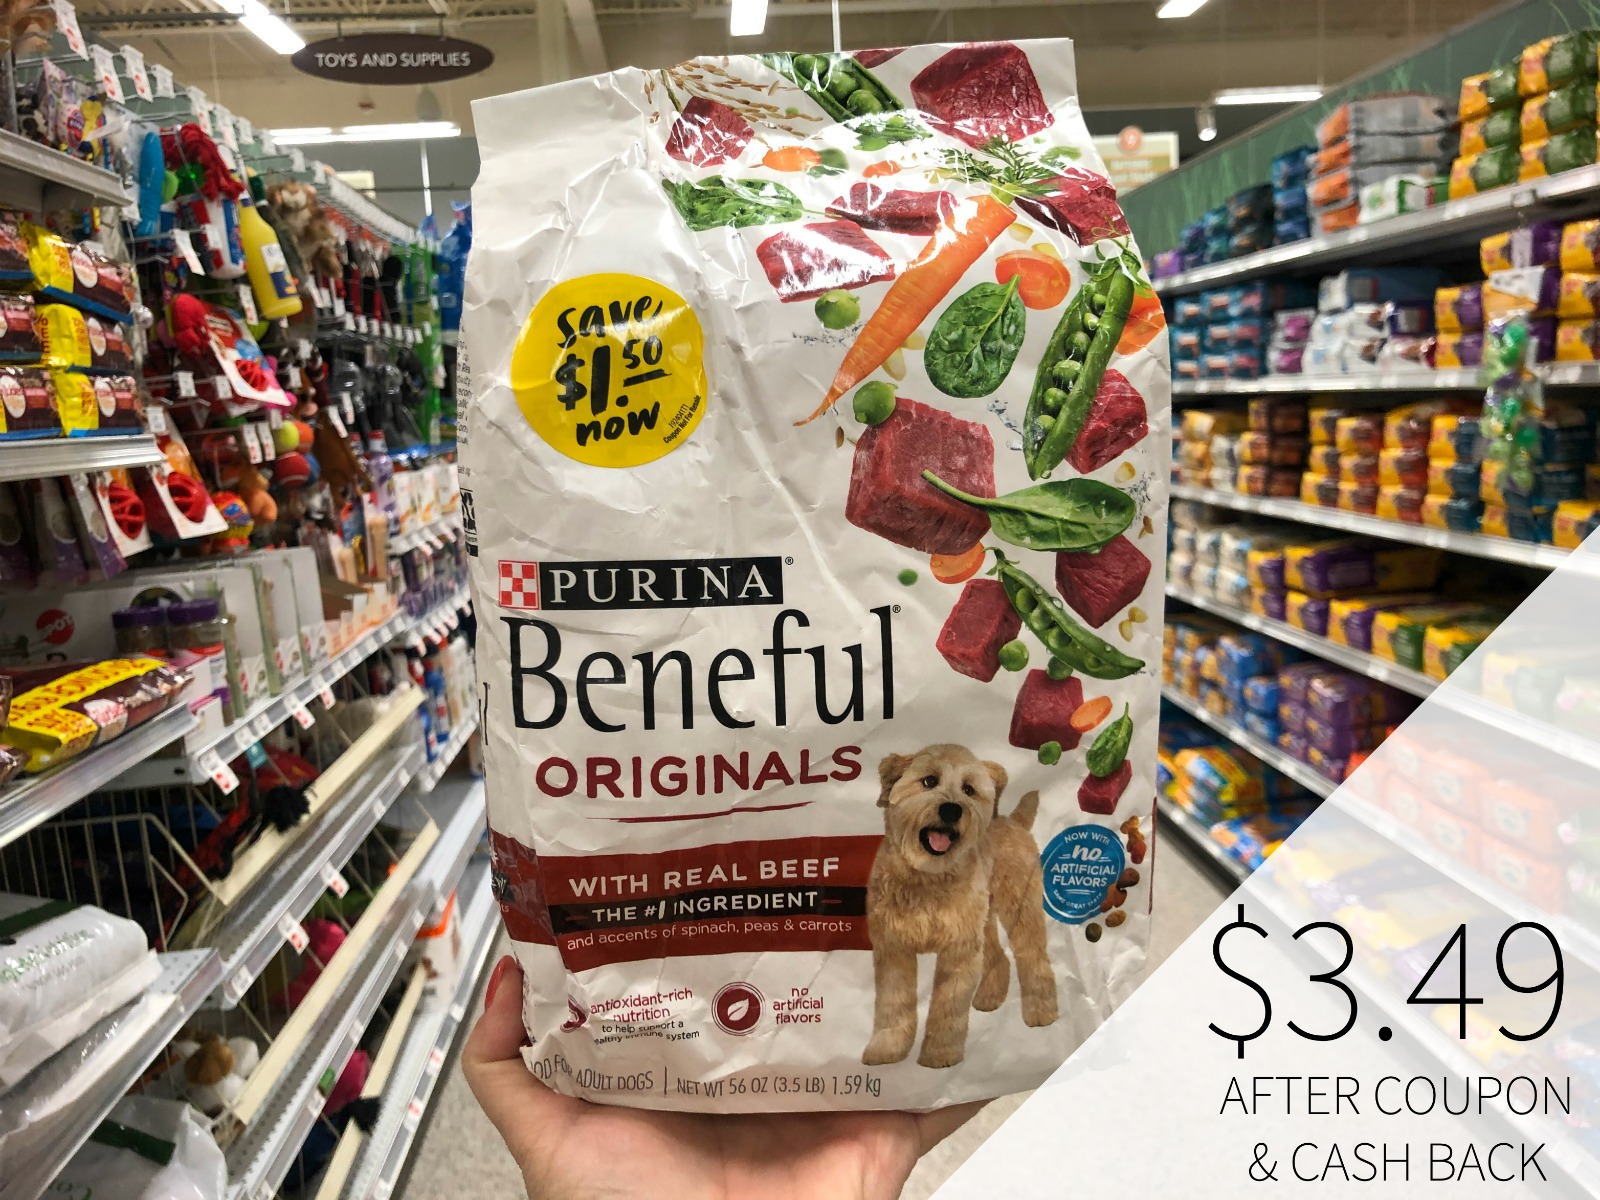 New Purina Beneful Coupons Mean Nice Deals At Publix on I Heart Publix